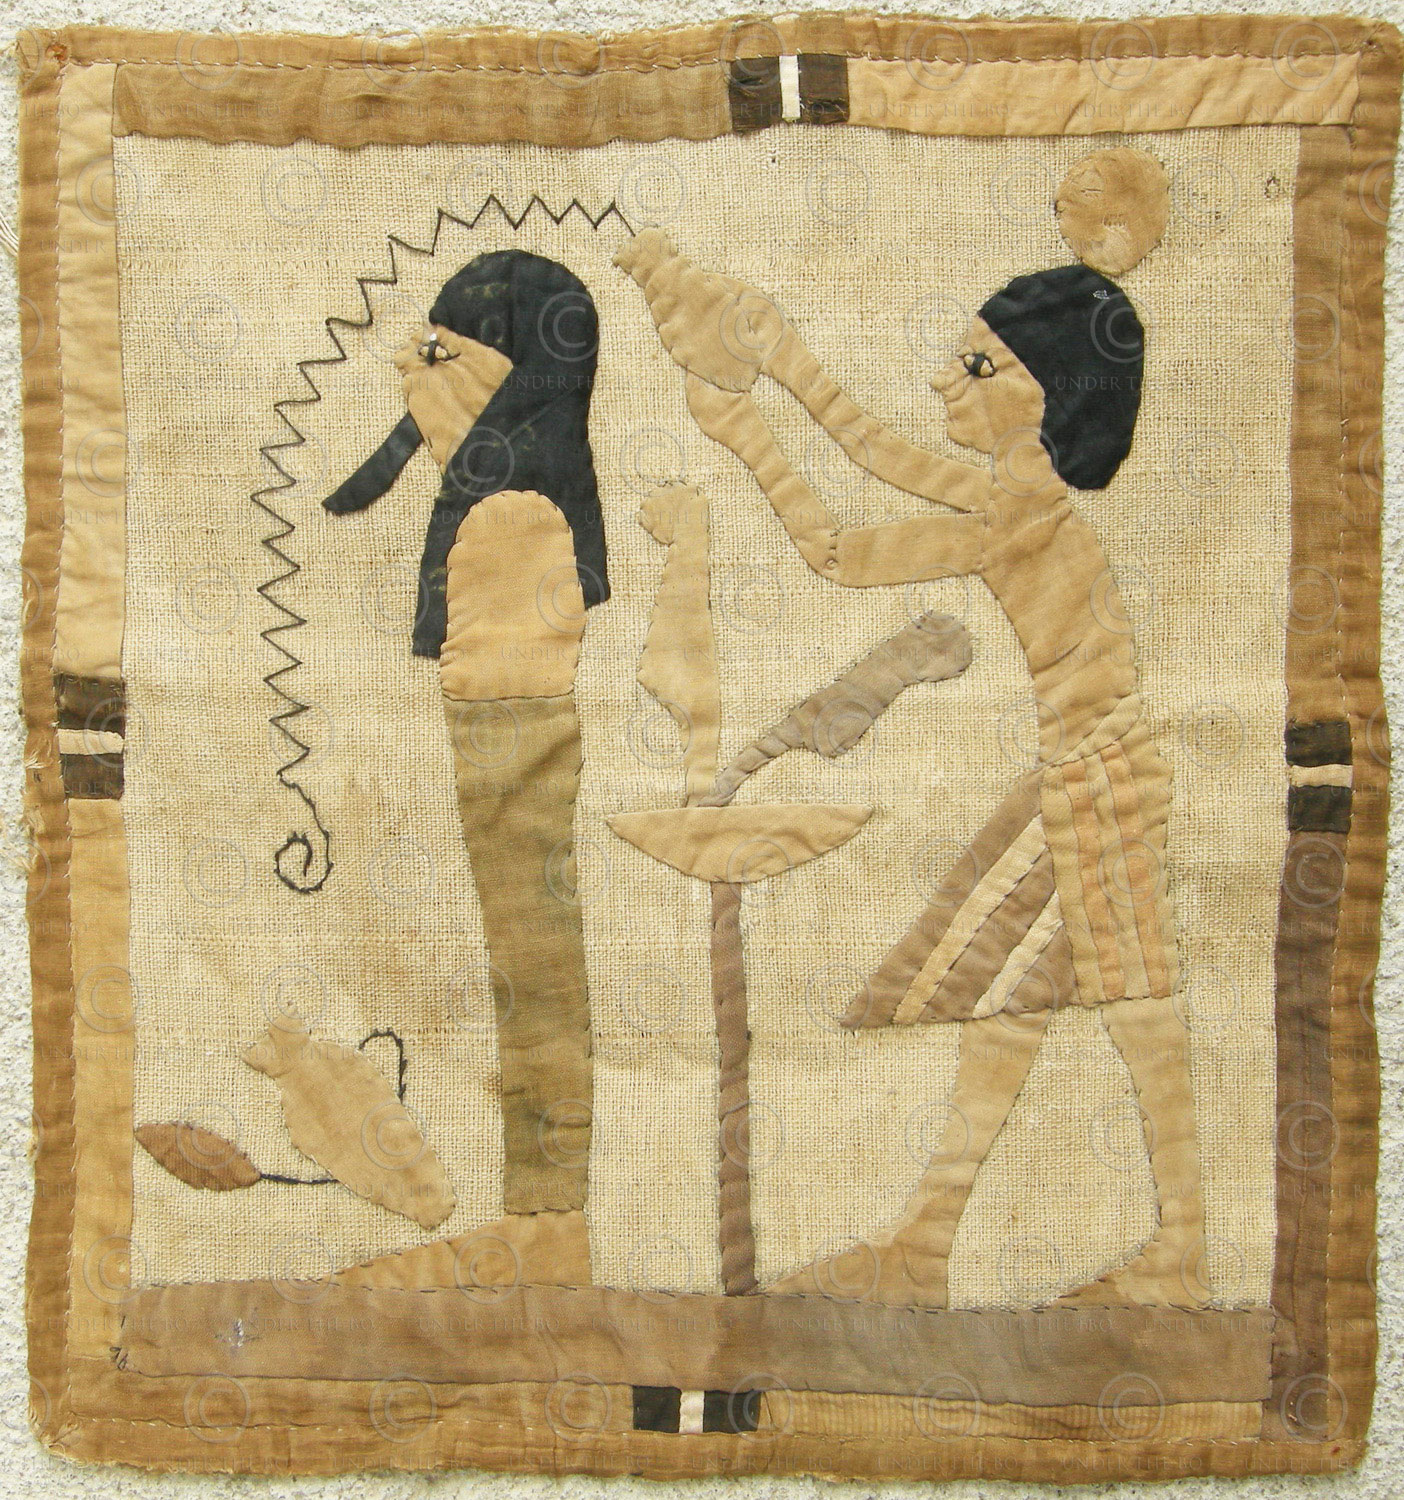 Egyptian revival tapestry 12UZ09C. Purchased in the Levant in the 1920s.